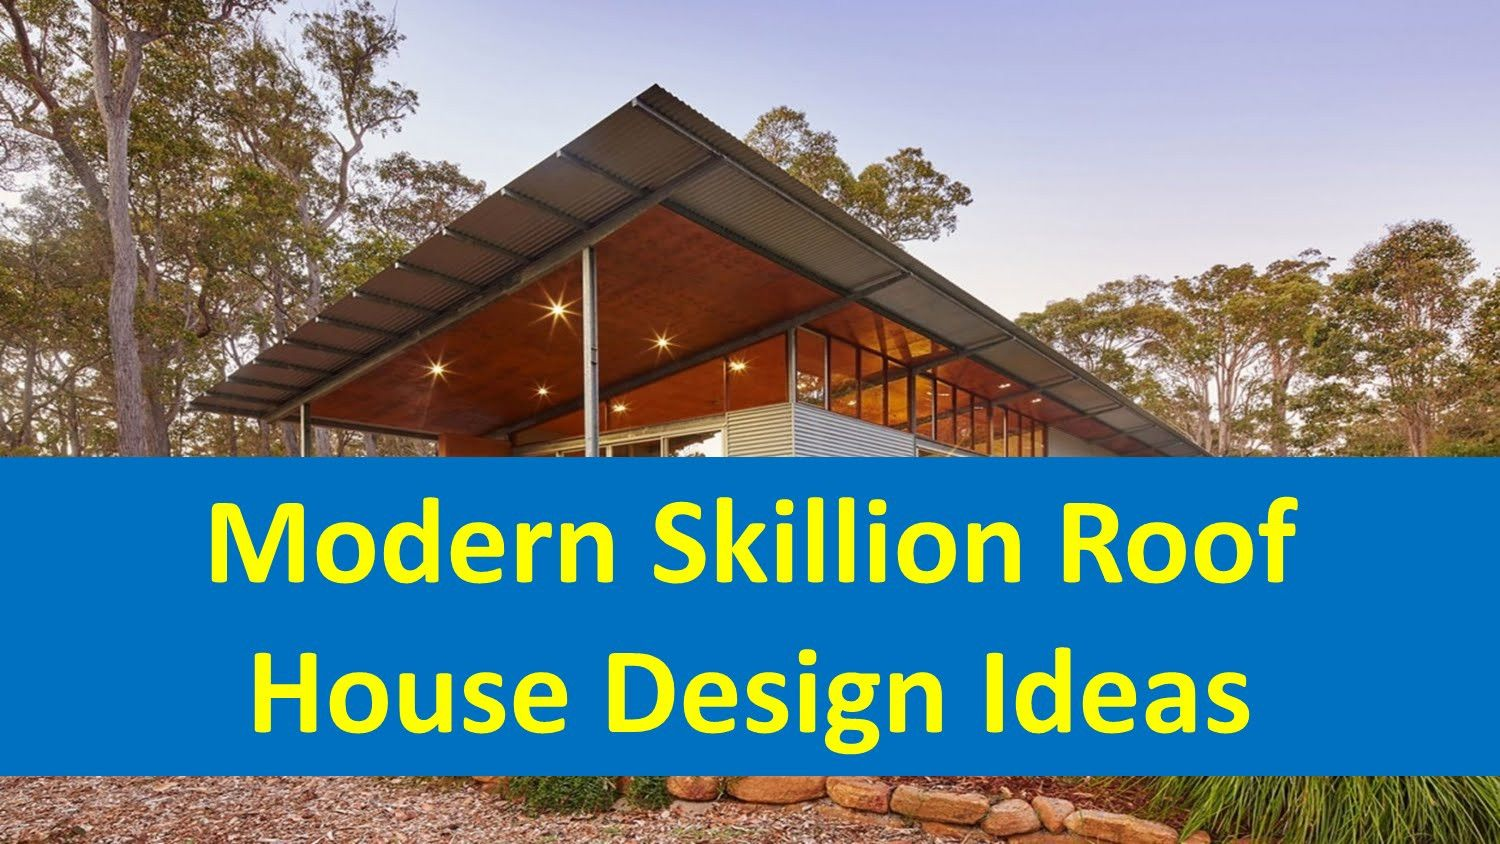 Low pitch roof house plans awesome skillion roof house designs shed